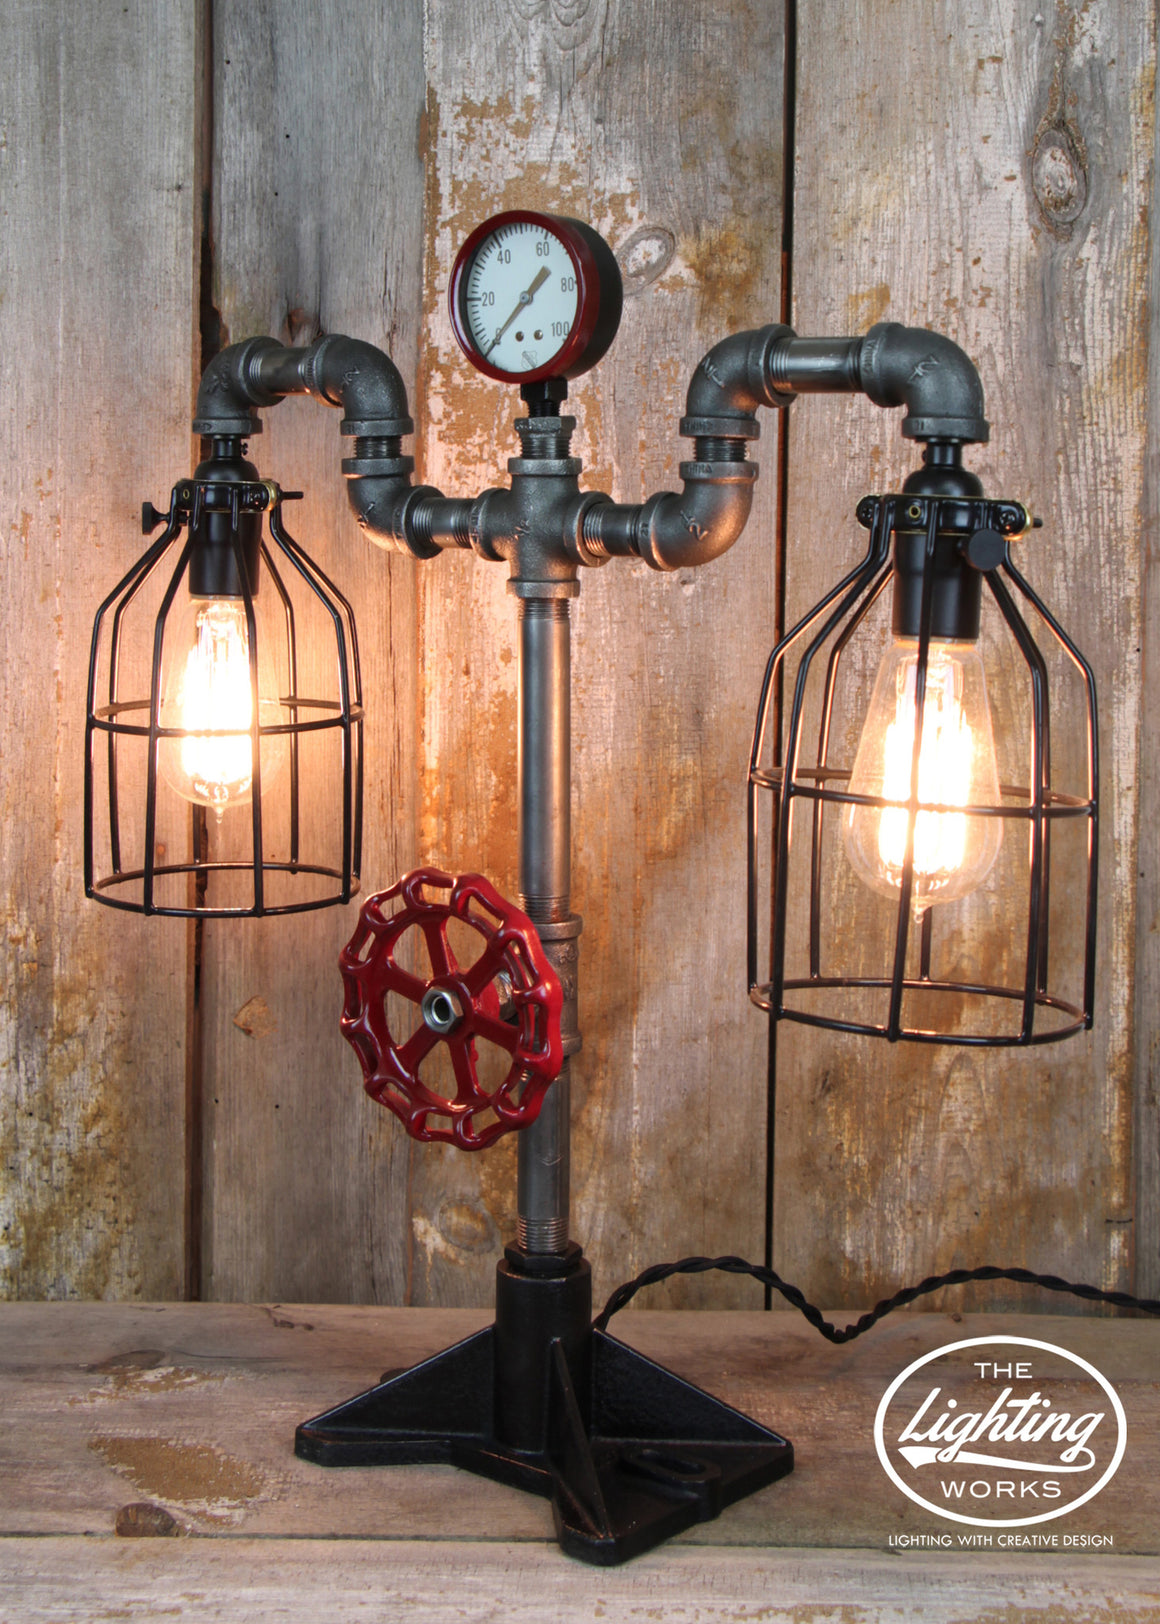 Steampunk Industrial Lamp with Dual Edison Lights - The Lighting Works